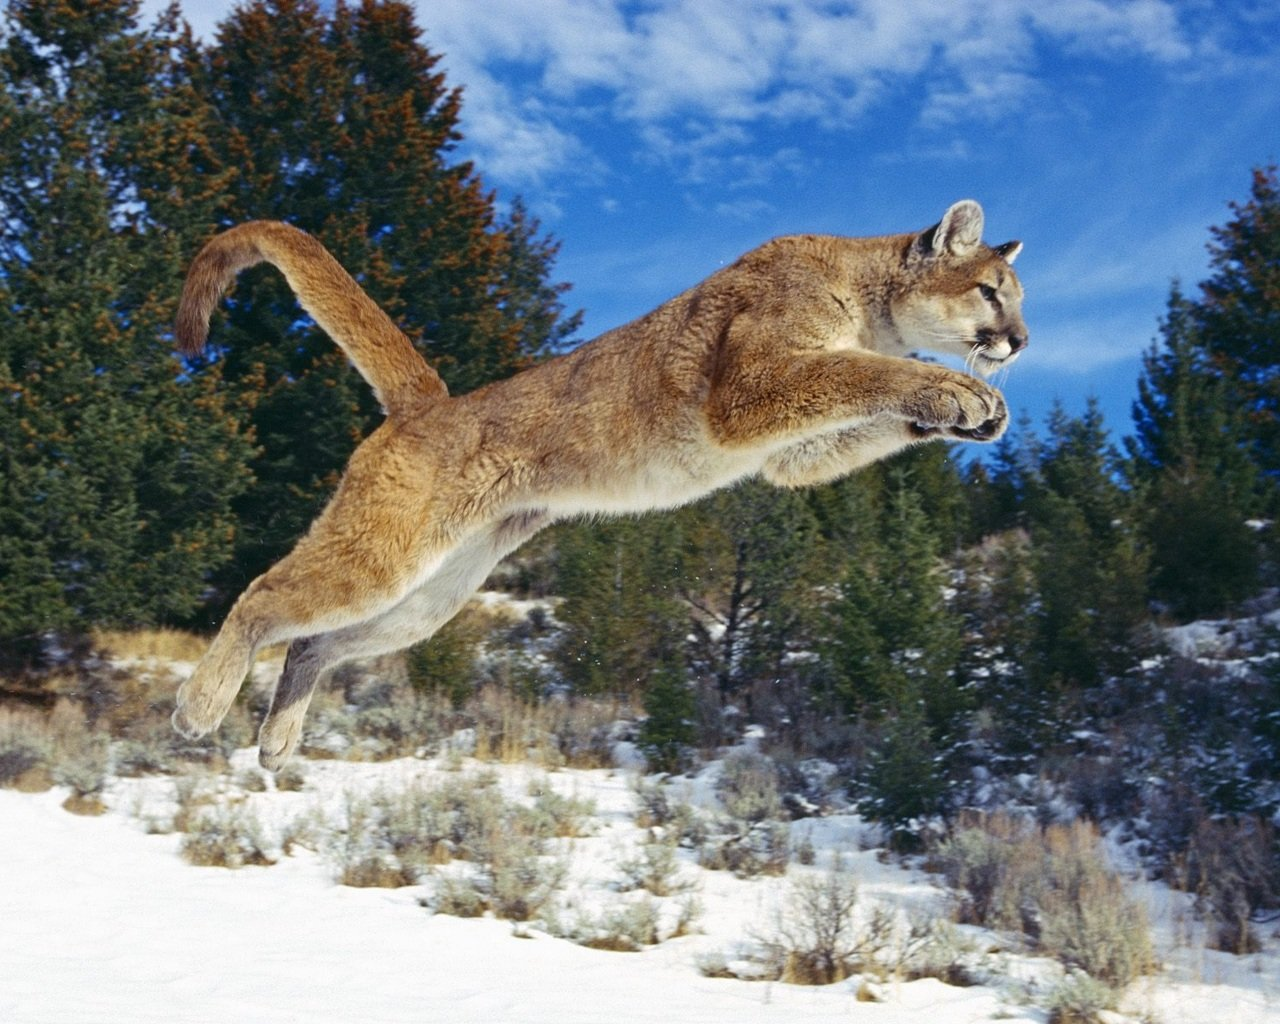 Download hd 1280x1024 Cougar PC background ID:81726 for free